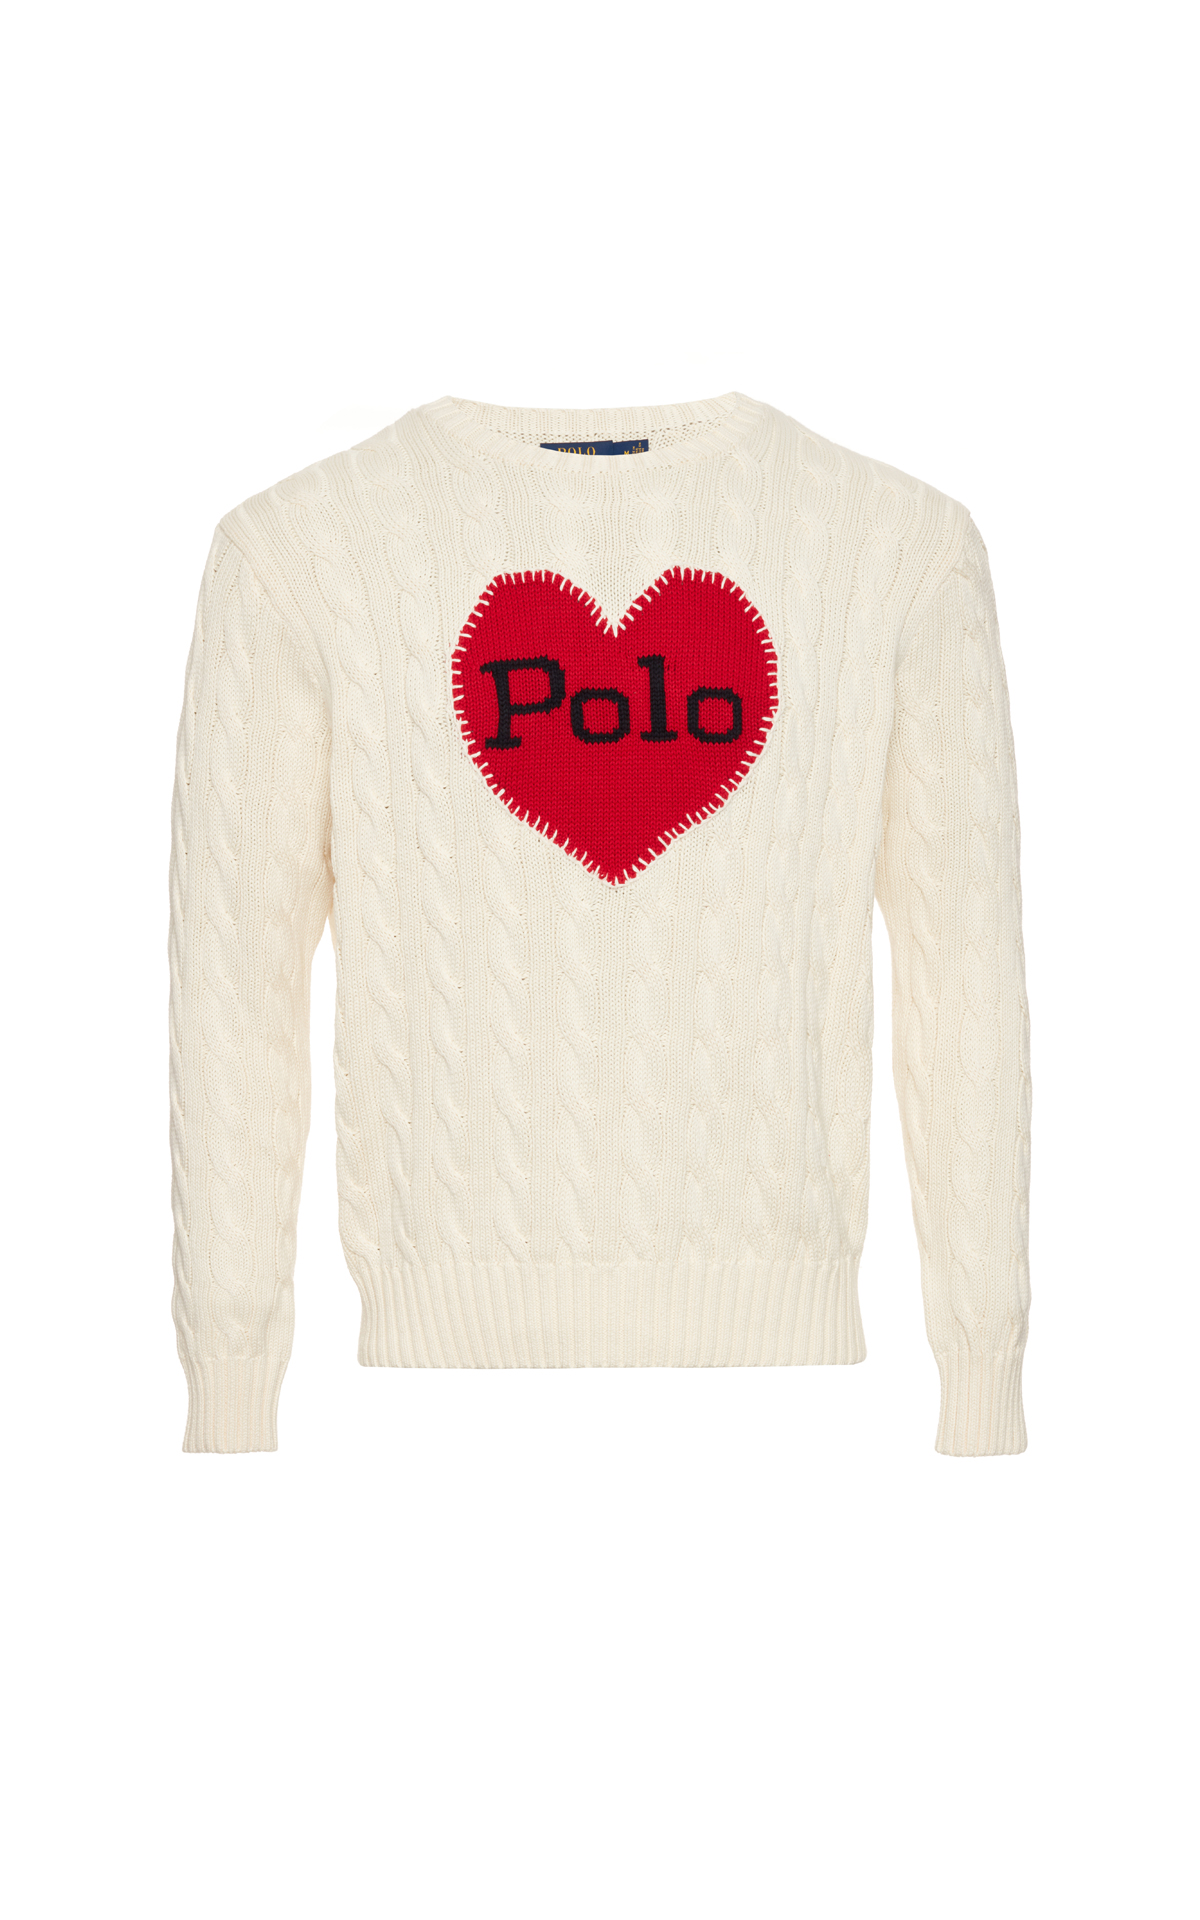 Polo Ralph Lauren Women's Jumper at The Bicester Village Shopping Collection